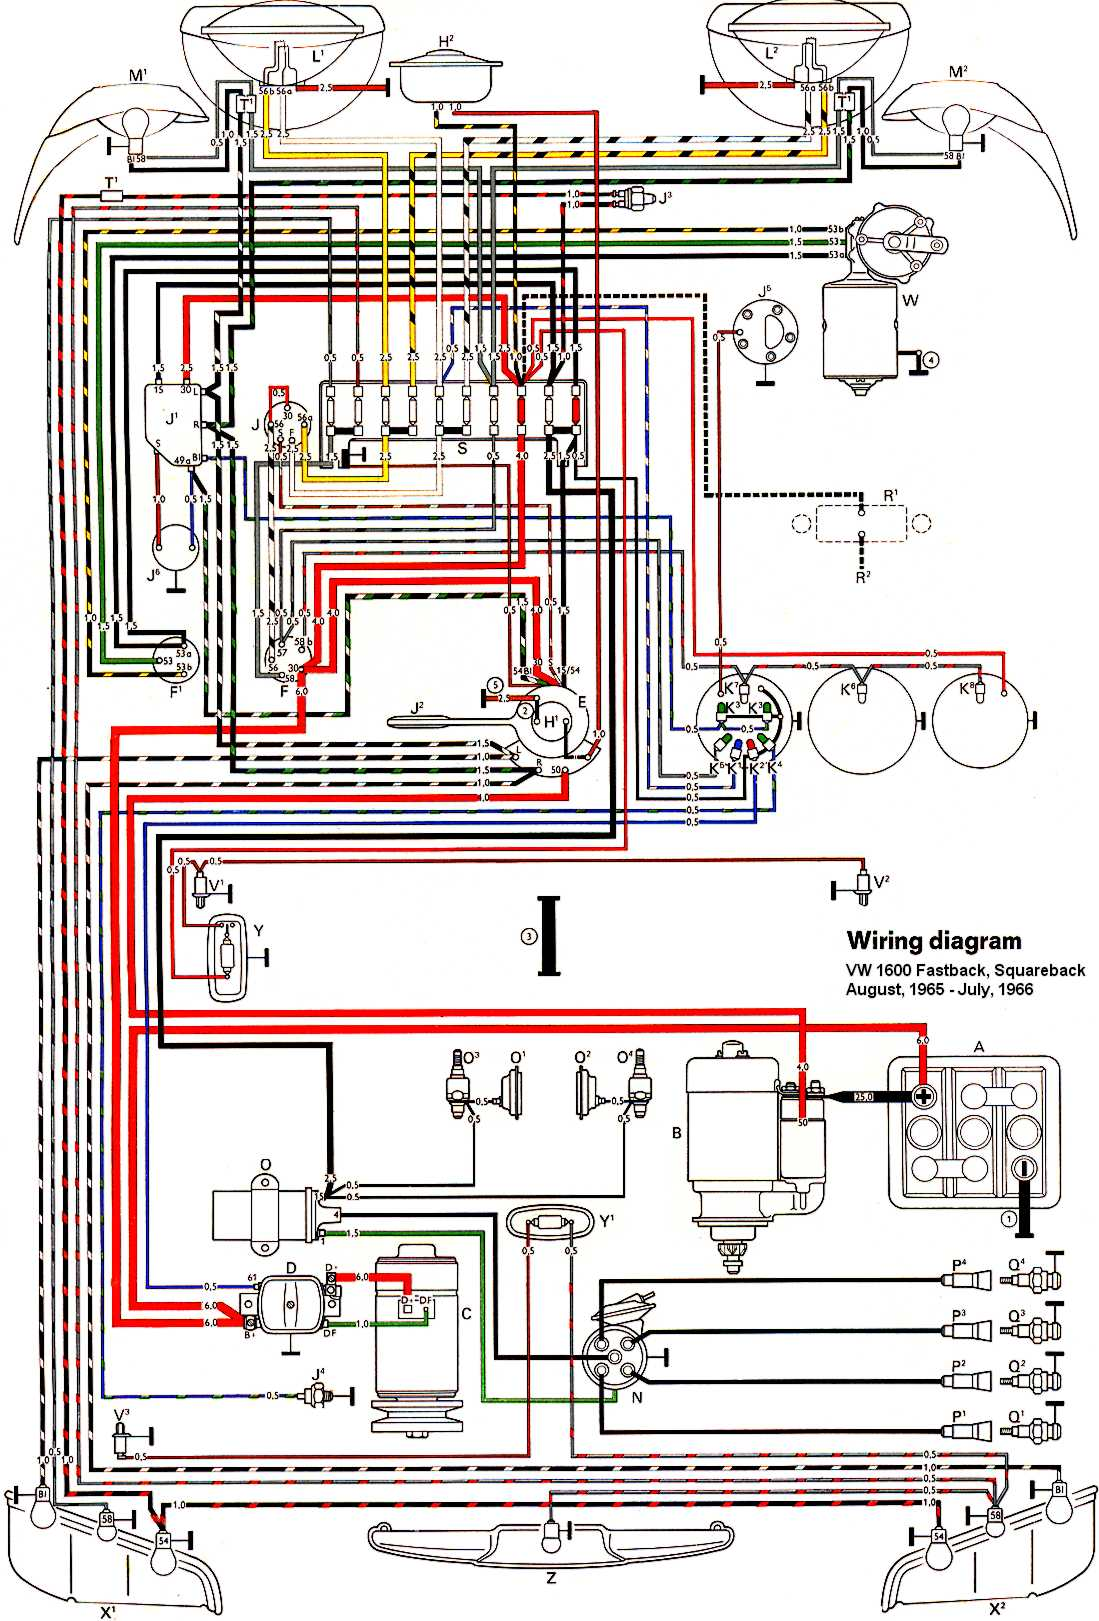 hight resolution of 2001 vw beetle wiring wiring diagram portal wire loom 1965 vw beetle wiring free wiring diagram